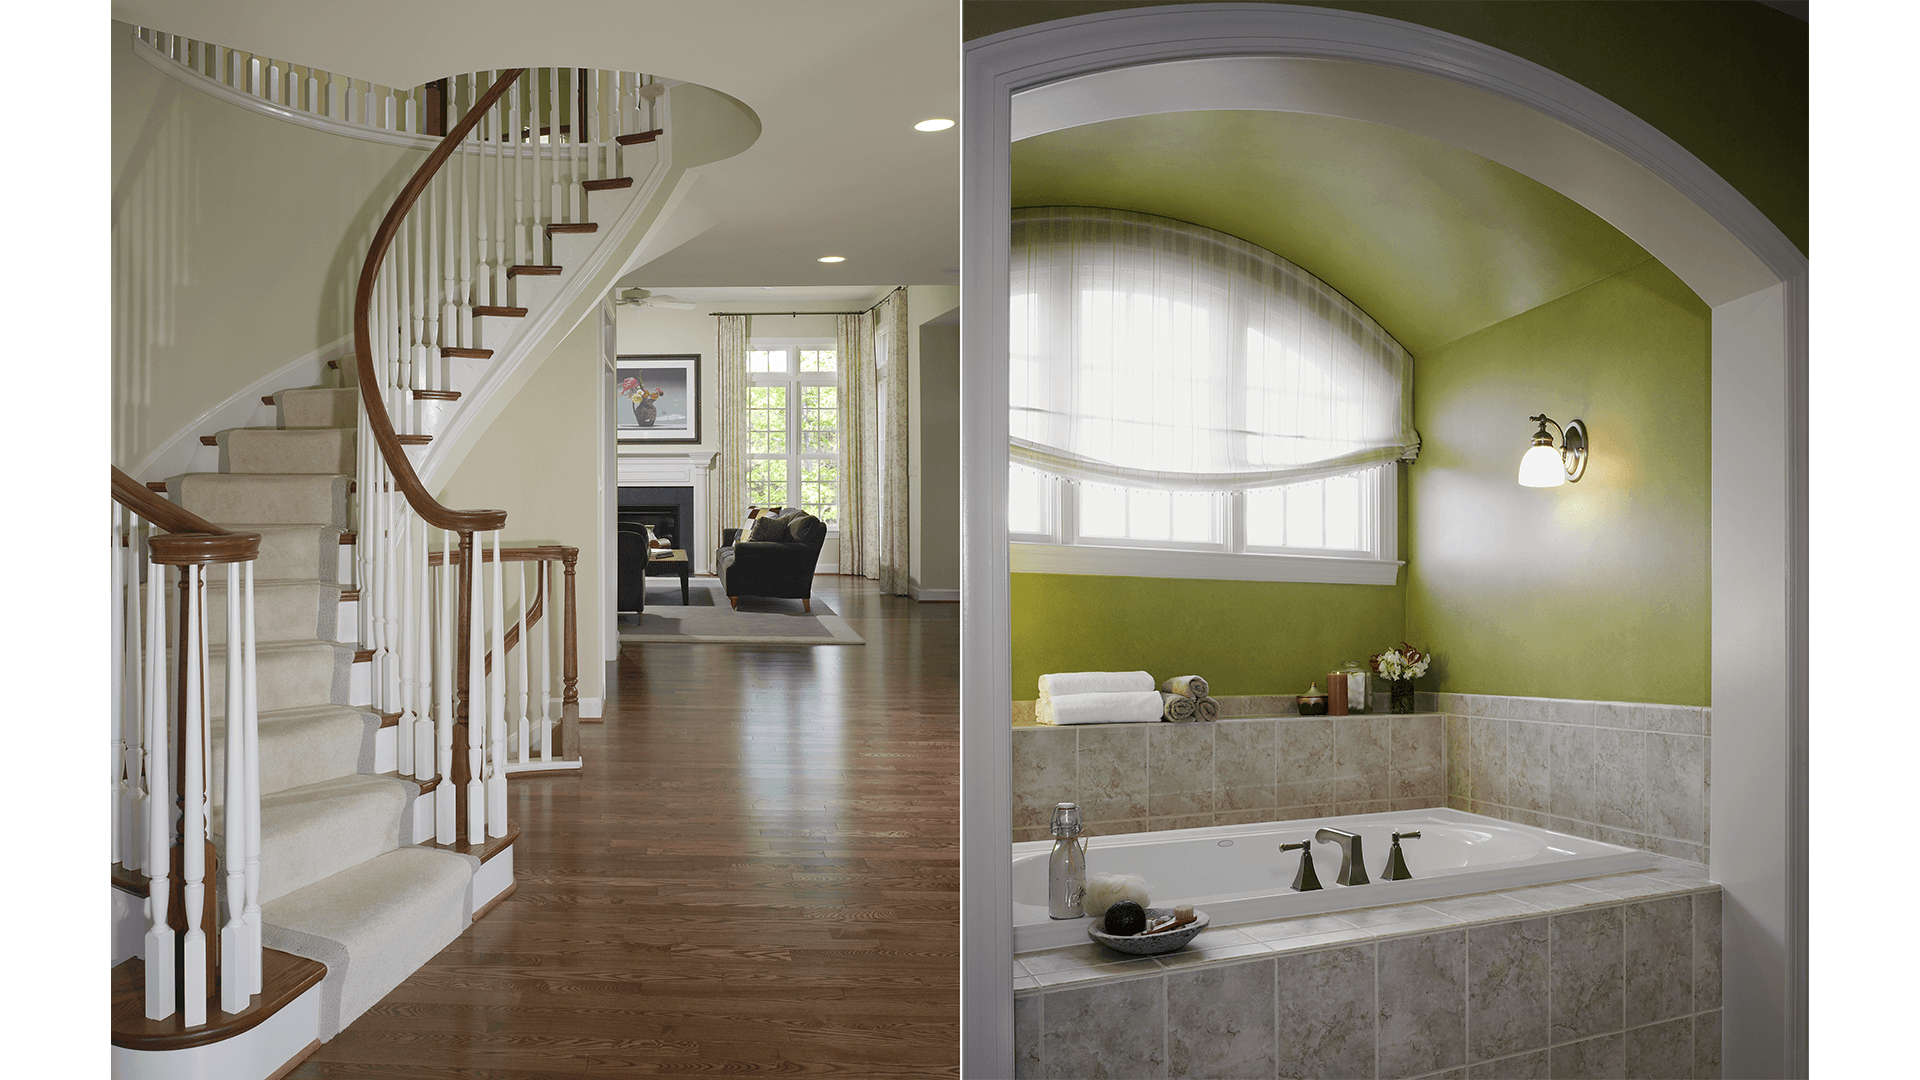 The Foyer Stair and Owner's Bath in our Ashcroft model from Brambleton. Some options shown.